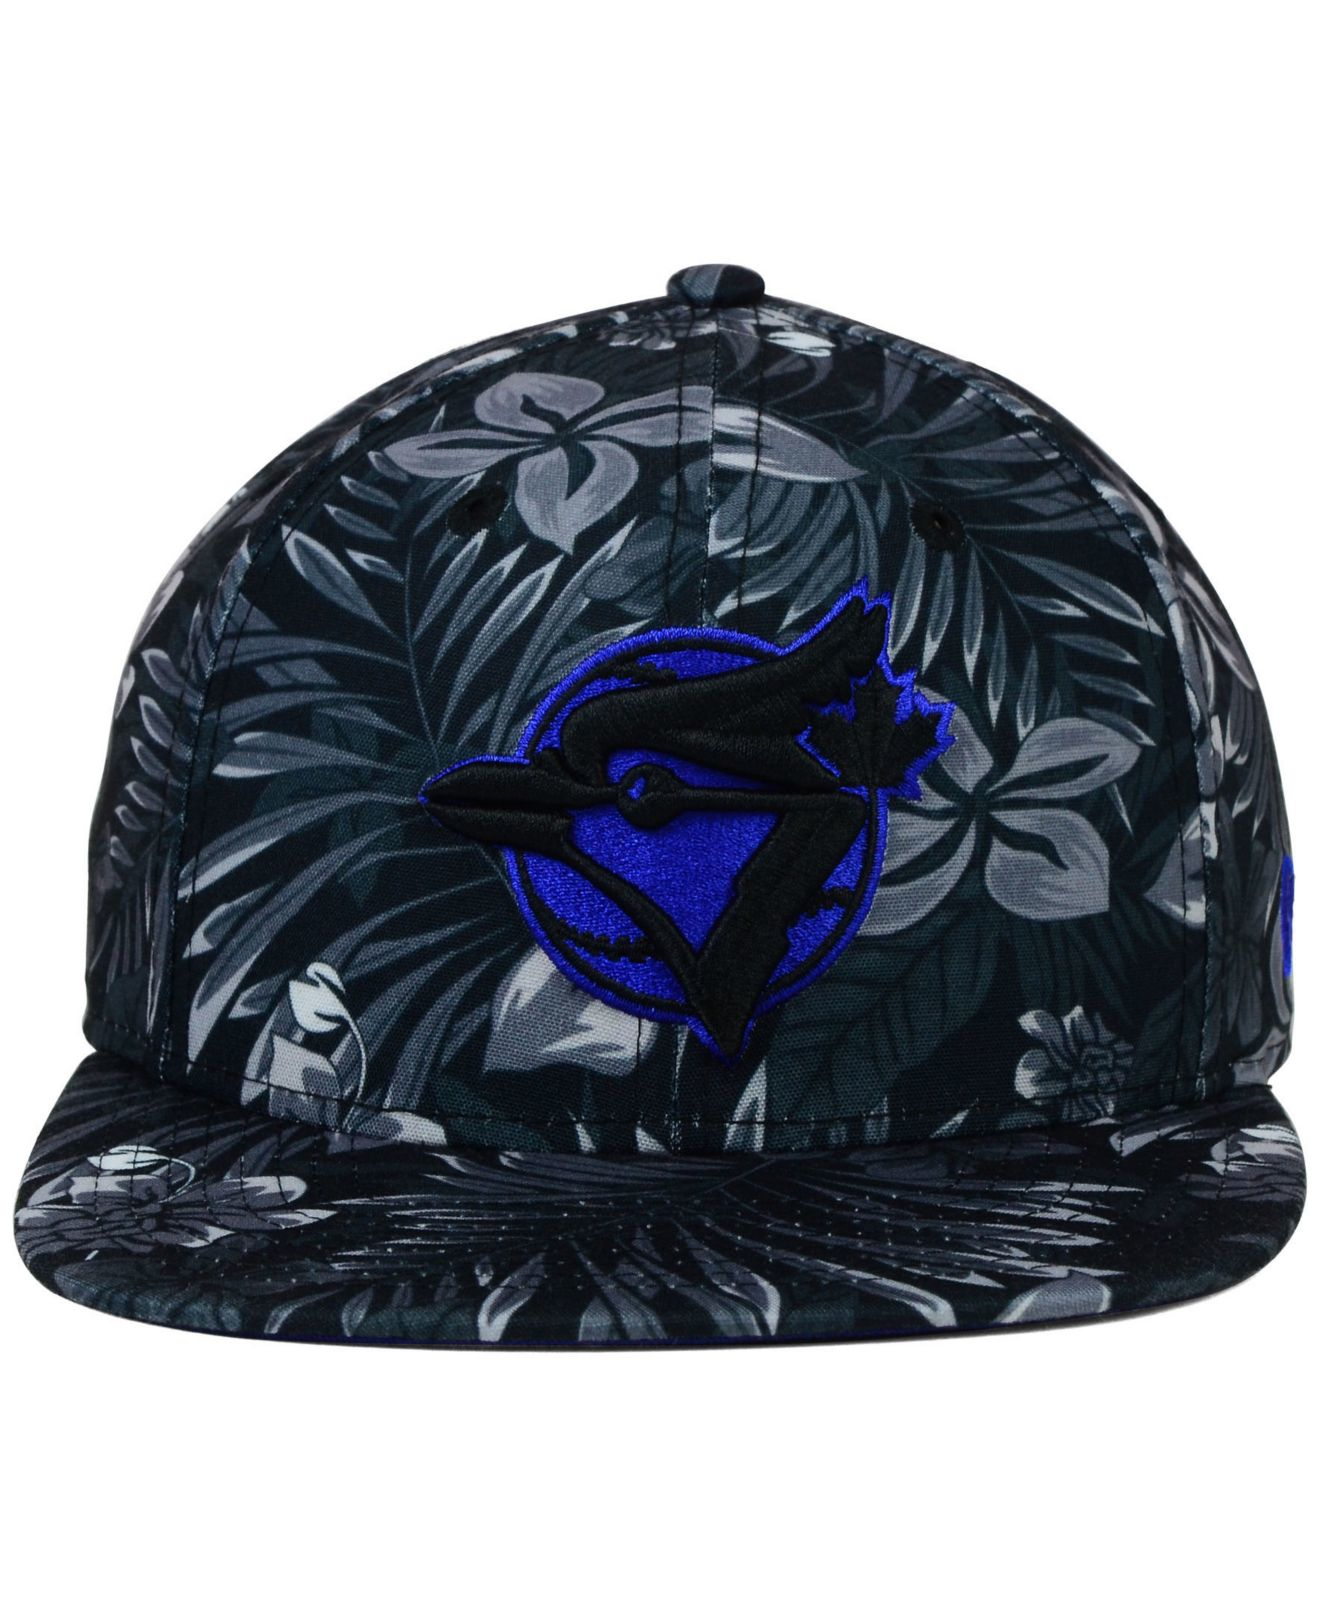 buy popular 987dc 93c78 ... wholesale lyst ktz toronto blue jays night tropic 9fifty snapback cap  in d4336 c99ea